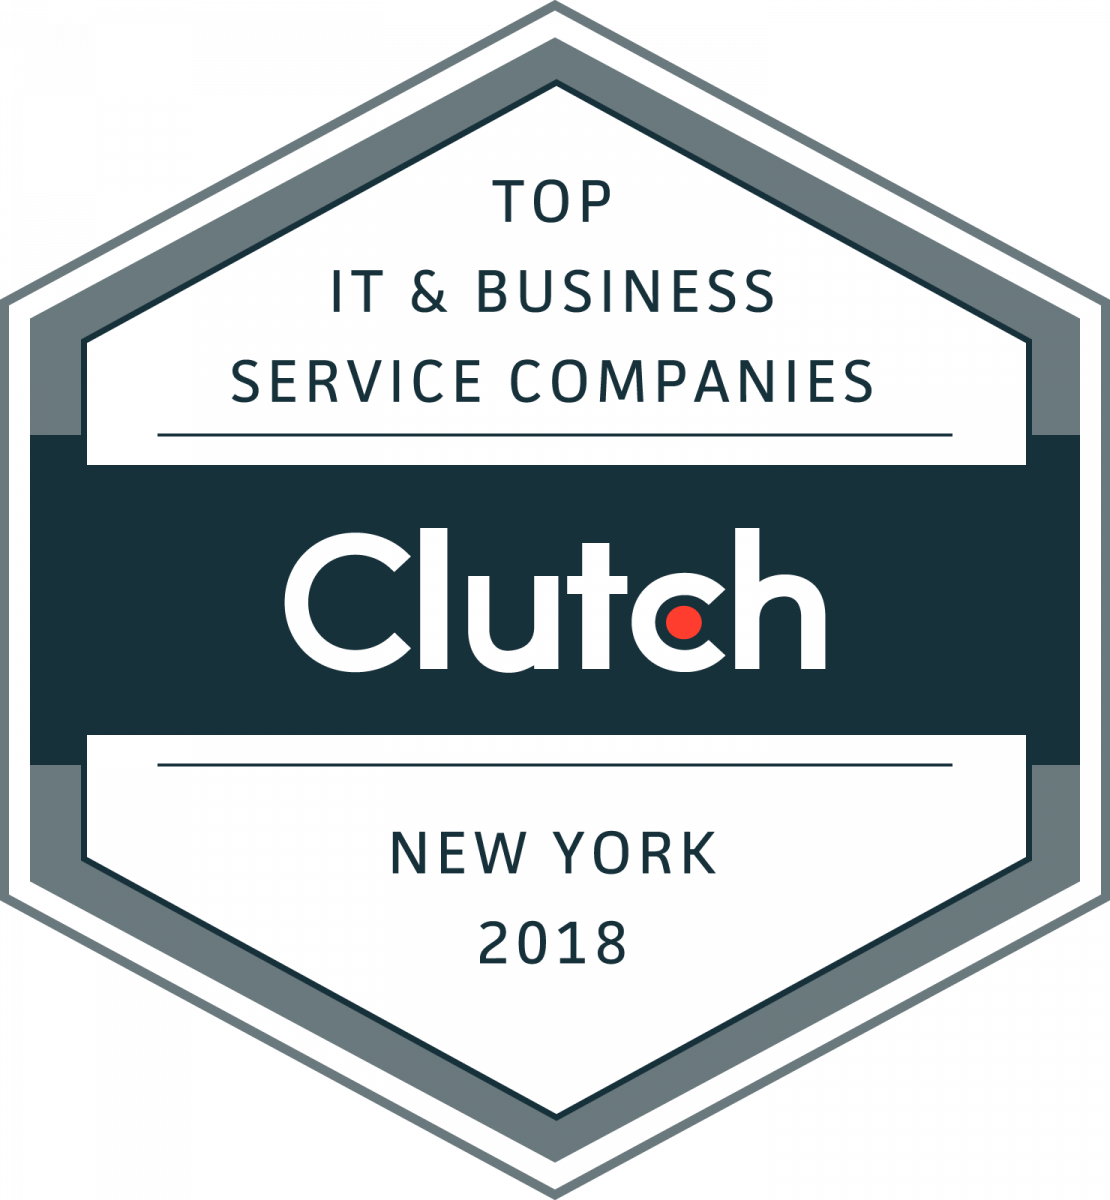 Top IT & Business Service Companies